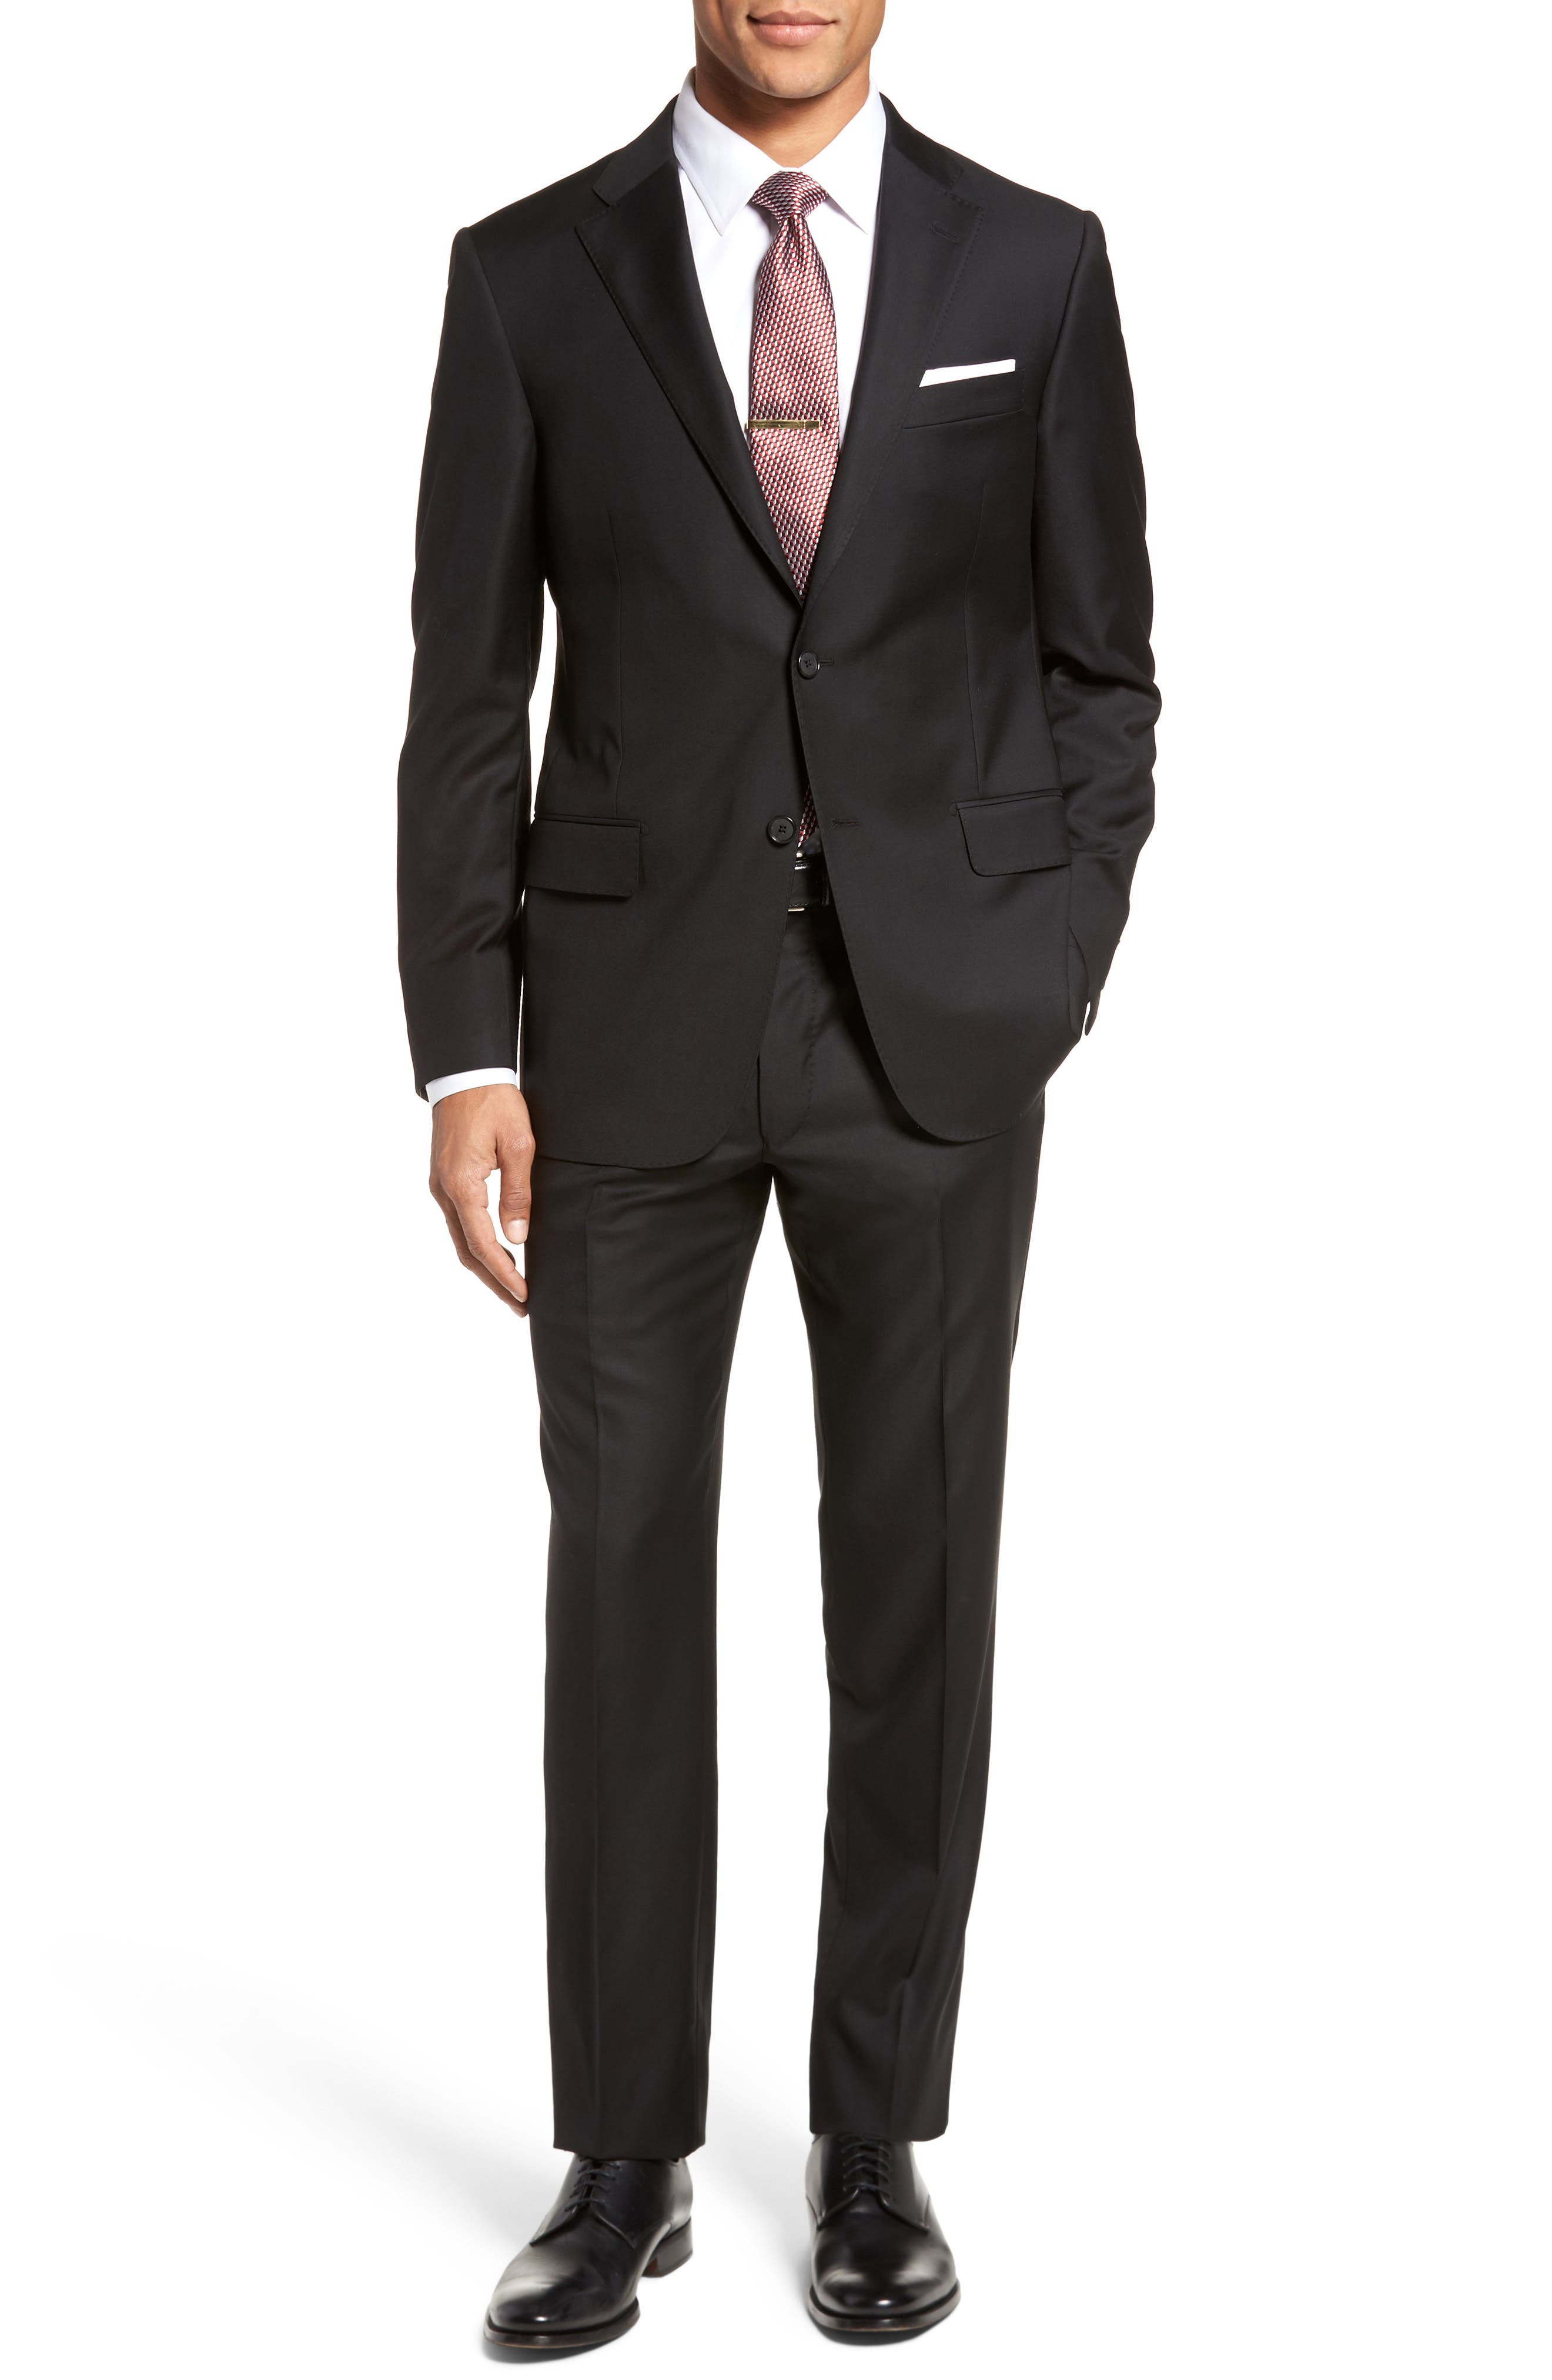 HICKEY FREEMAN CLASSIC B FIT CHECK WOOL & CASHMERE SUIT